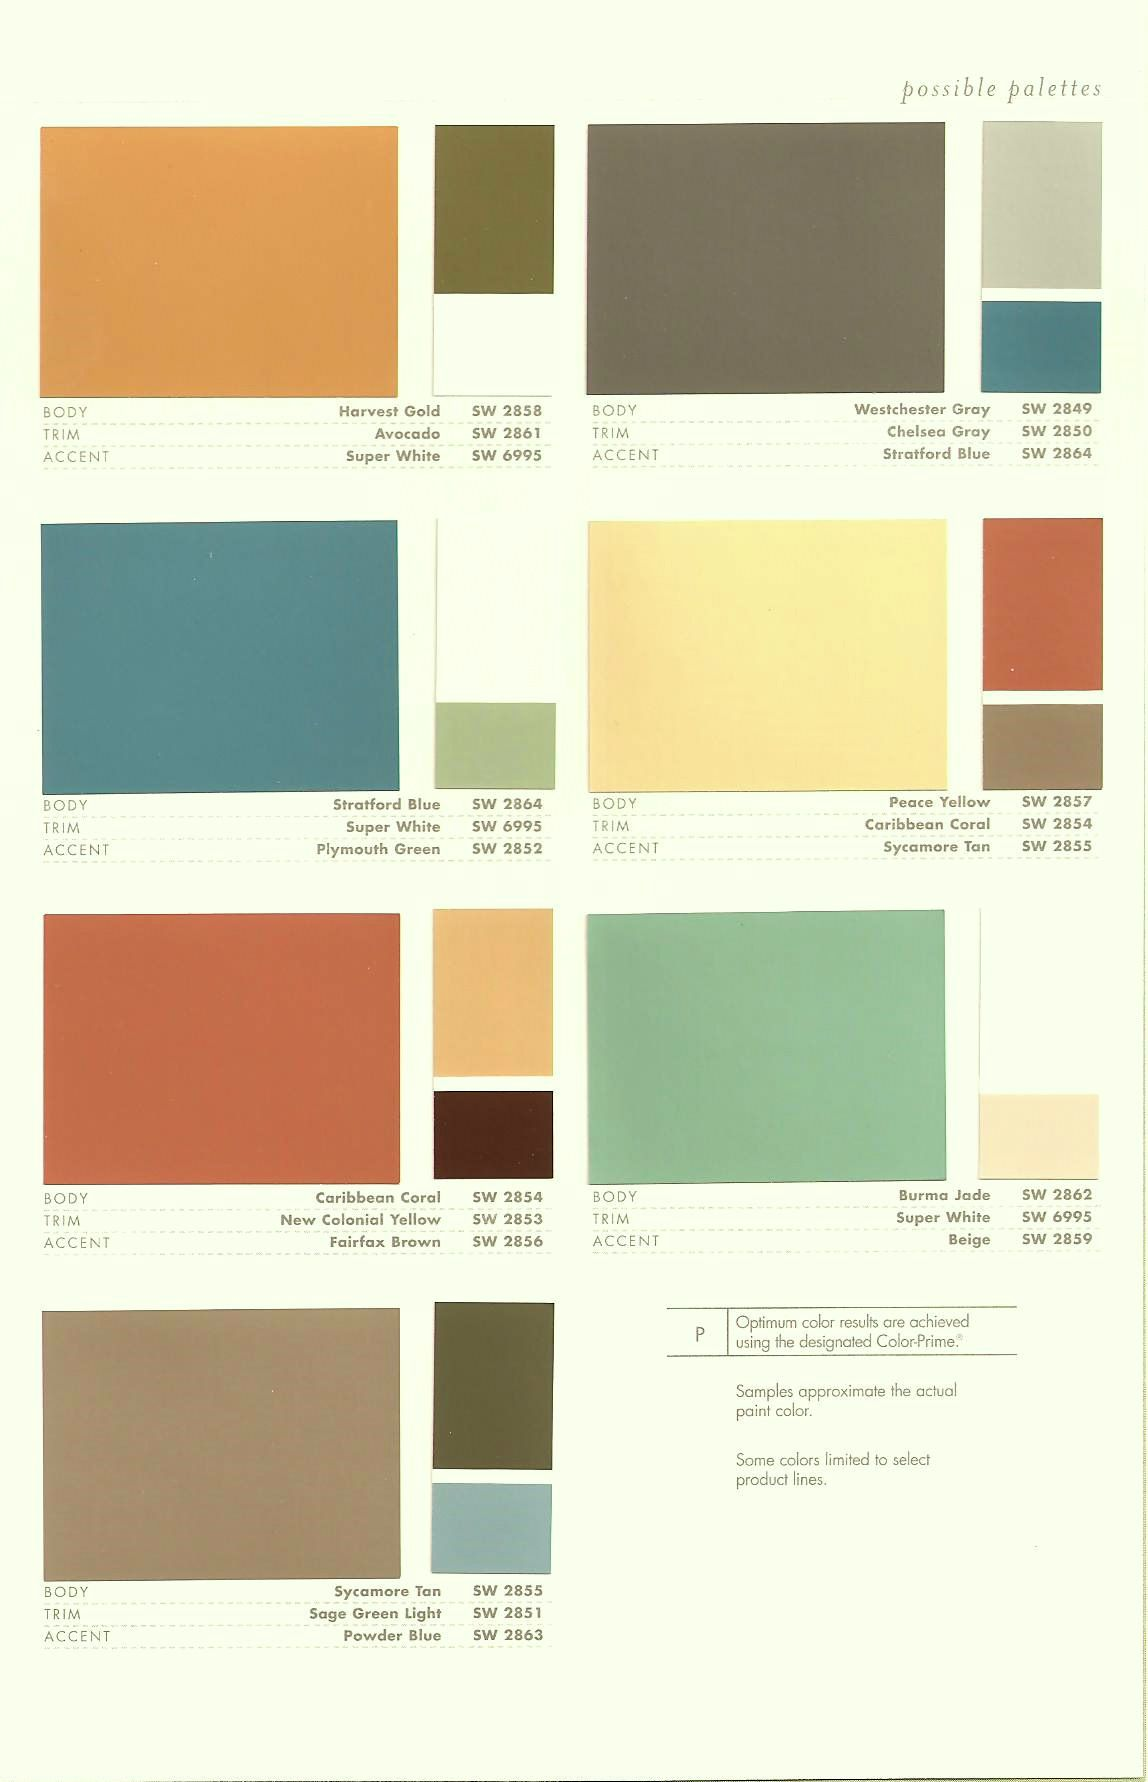 Exterior Colors I Want To Use The Blue Trim On My Bungalow But